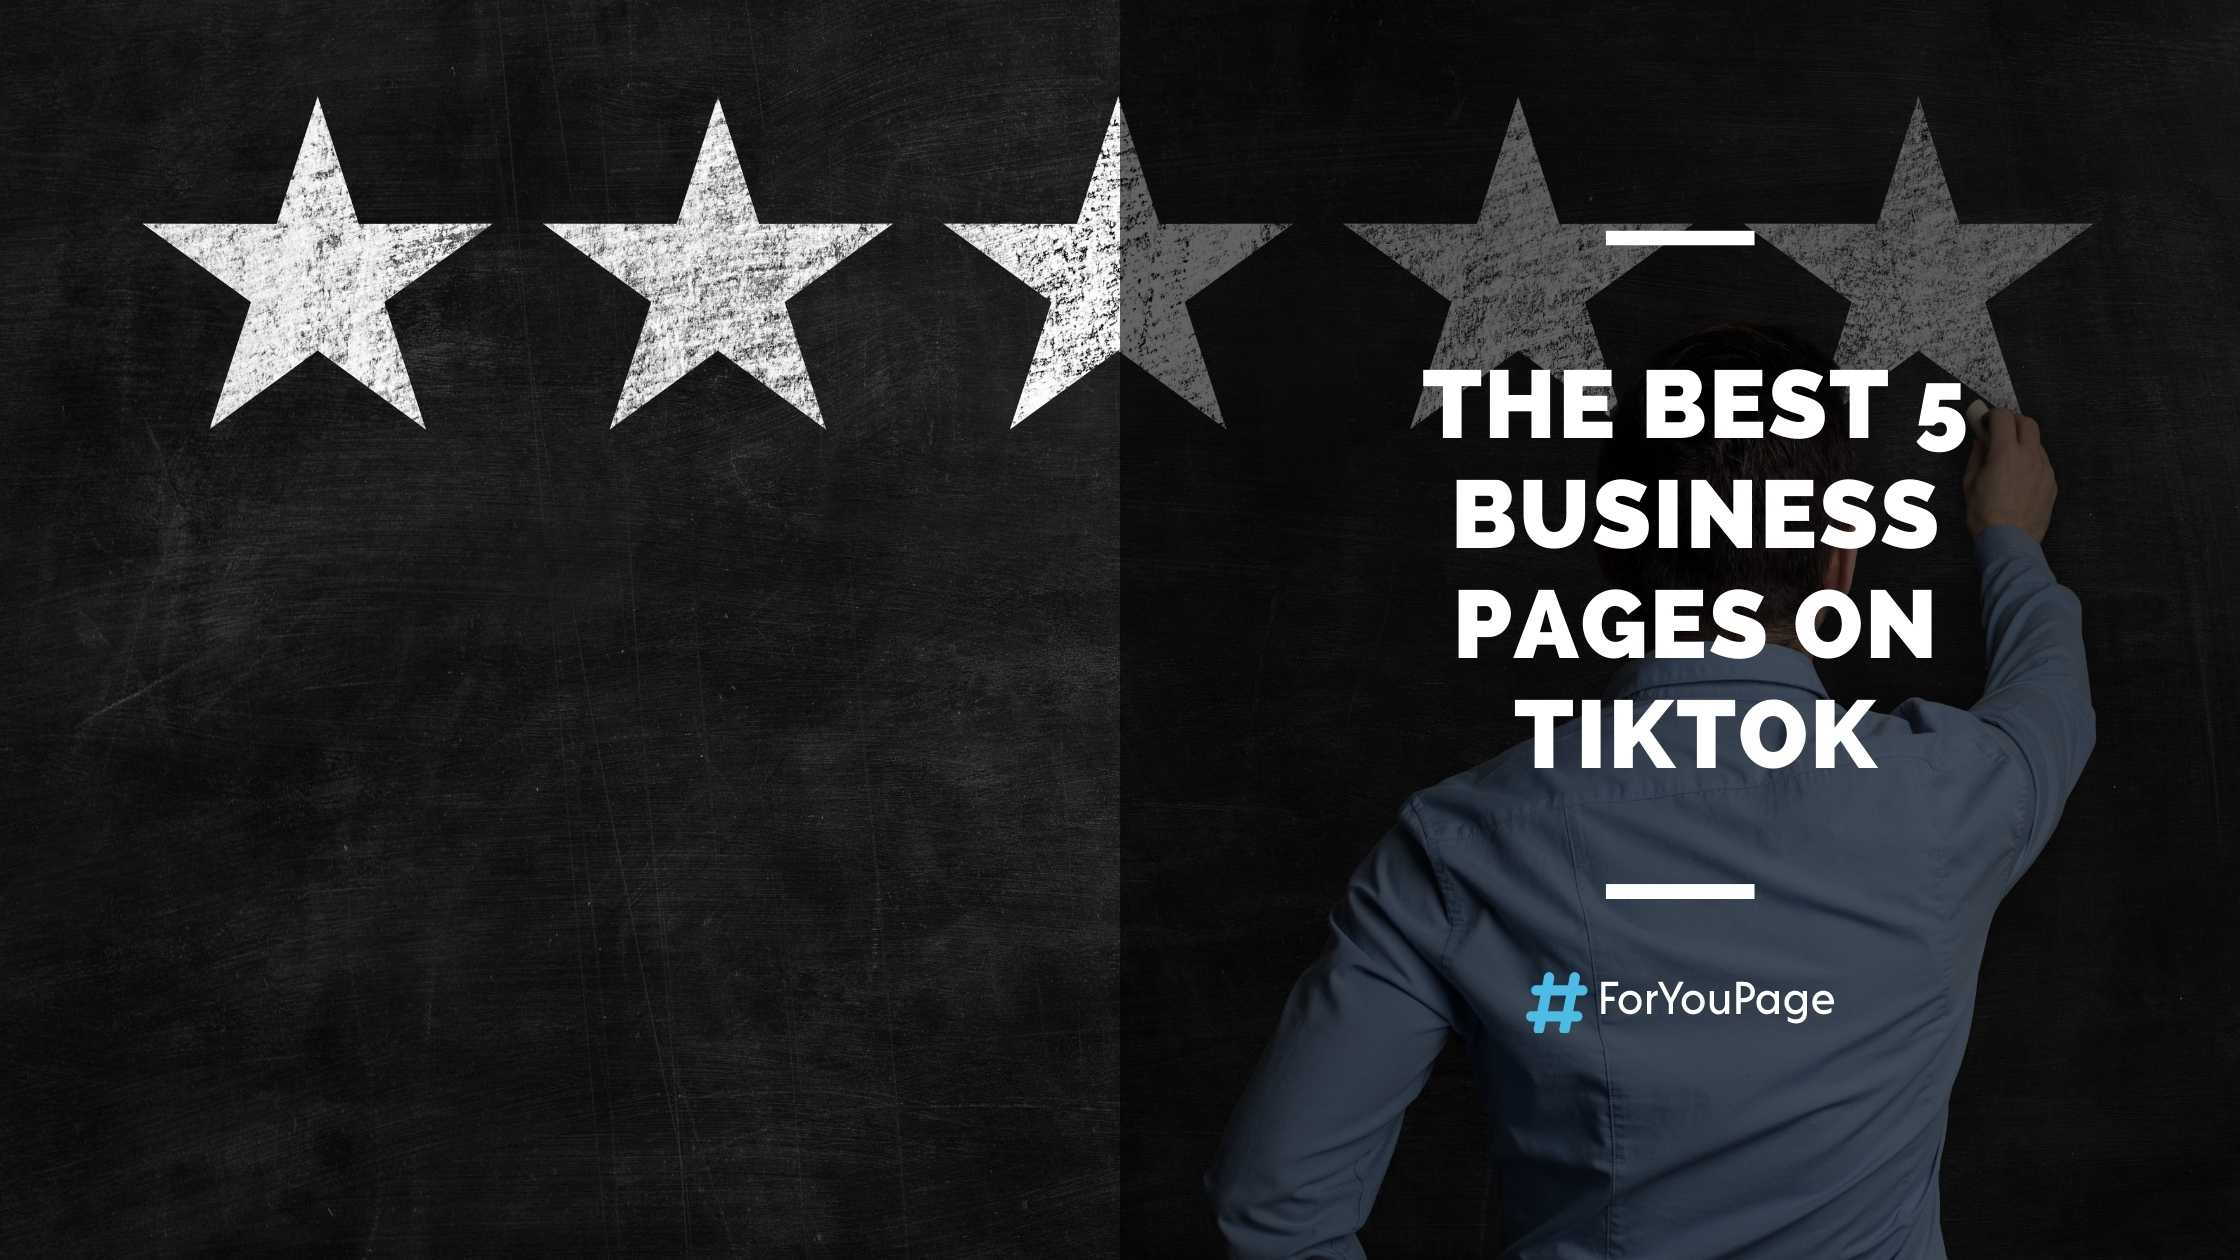 The Best 5 Business Pages On TikTok